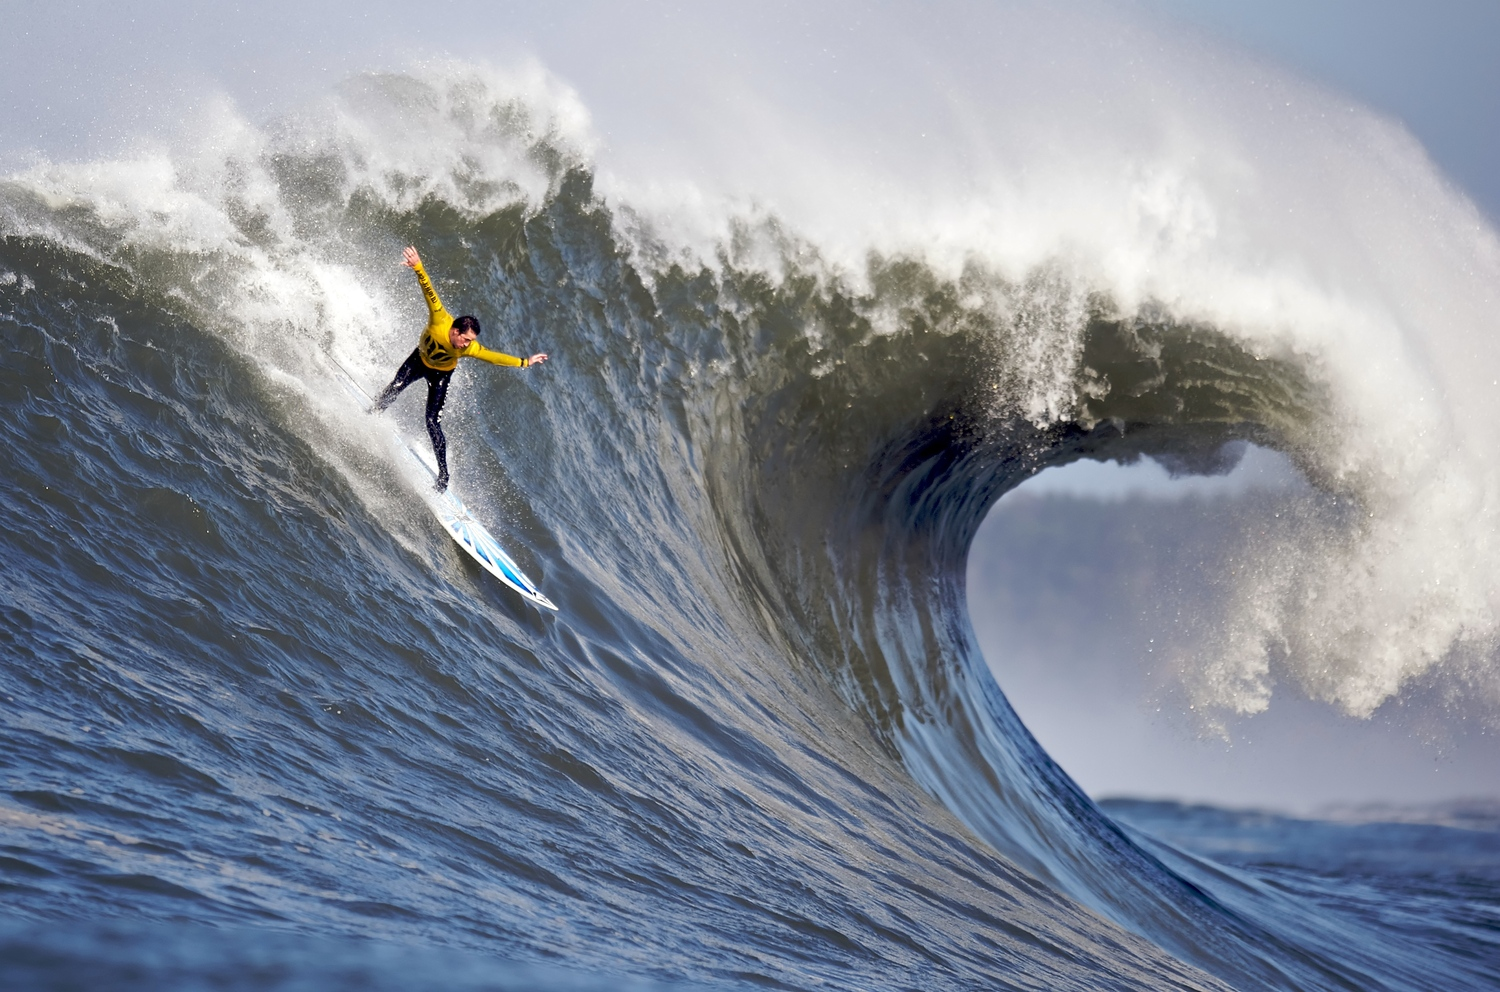 2010 Mavericks surfing competition. The image was taken from a boat.